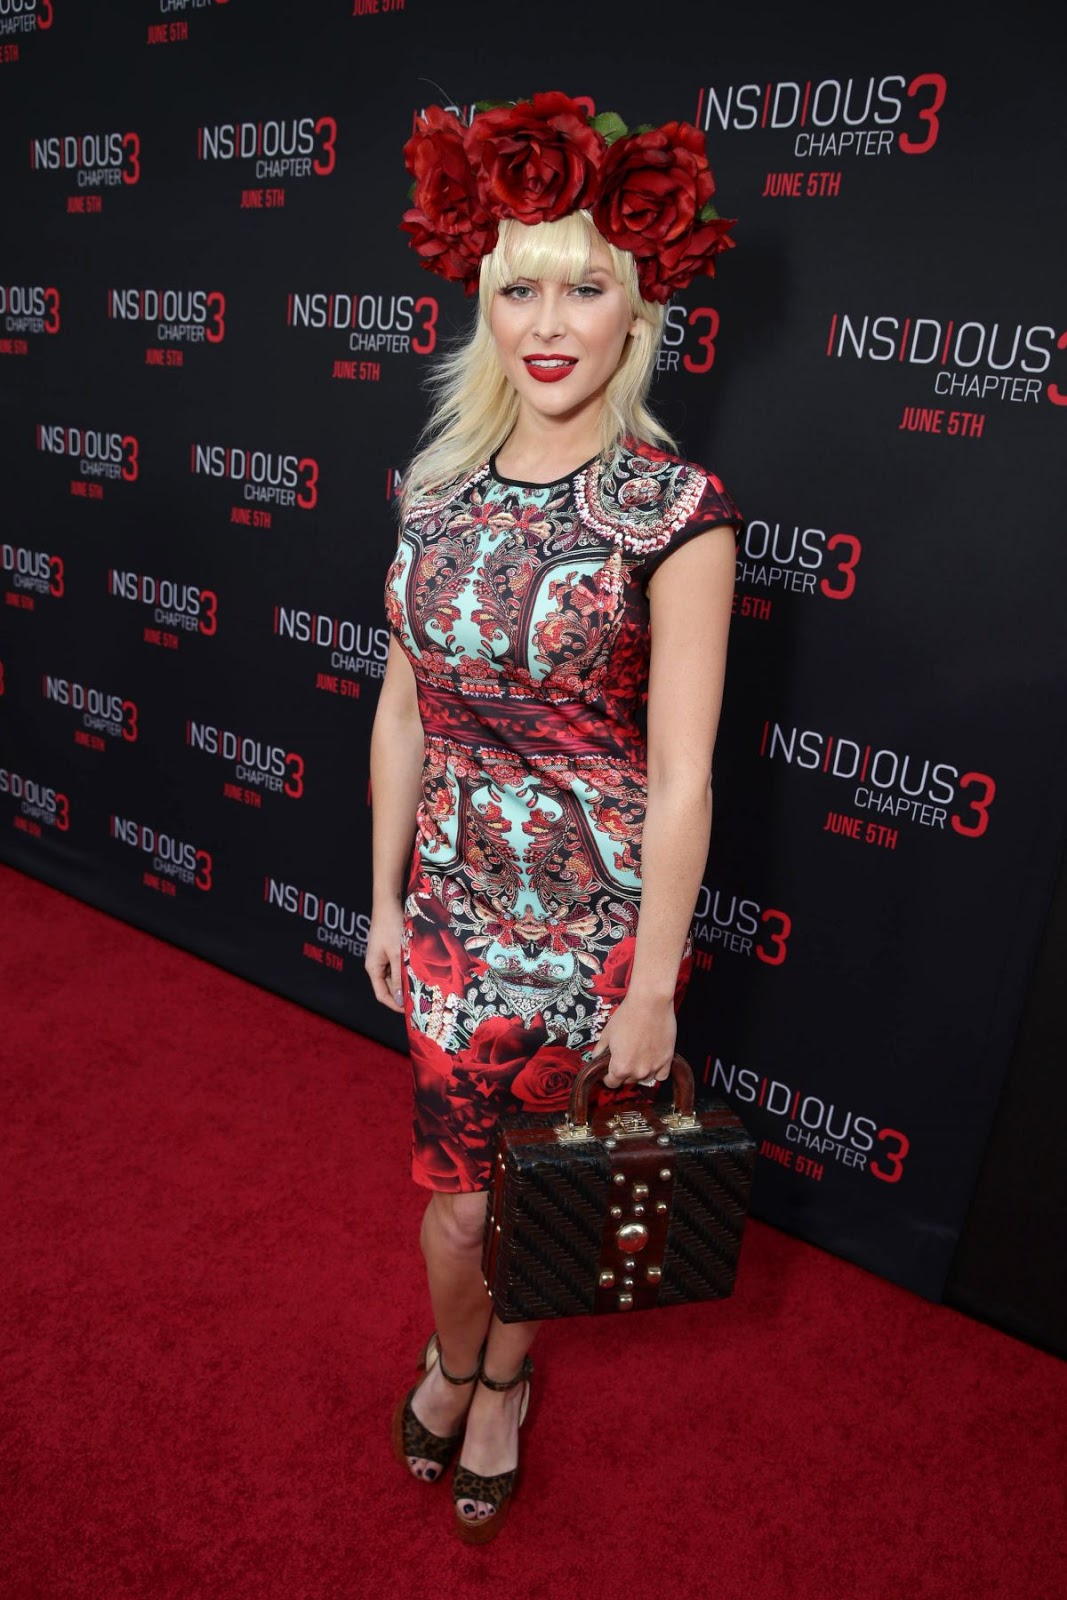 HQ Photos of Renee Olstead in Hot red dress At Insidious Chapter 3 Premiere In Hollywood